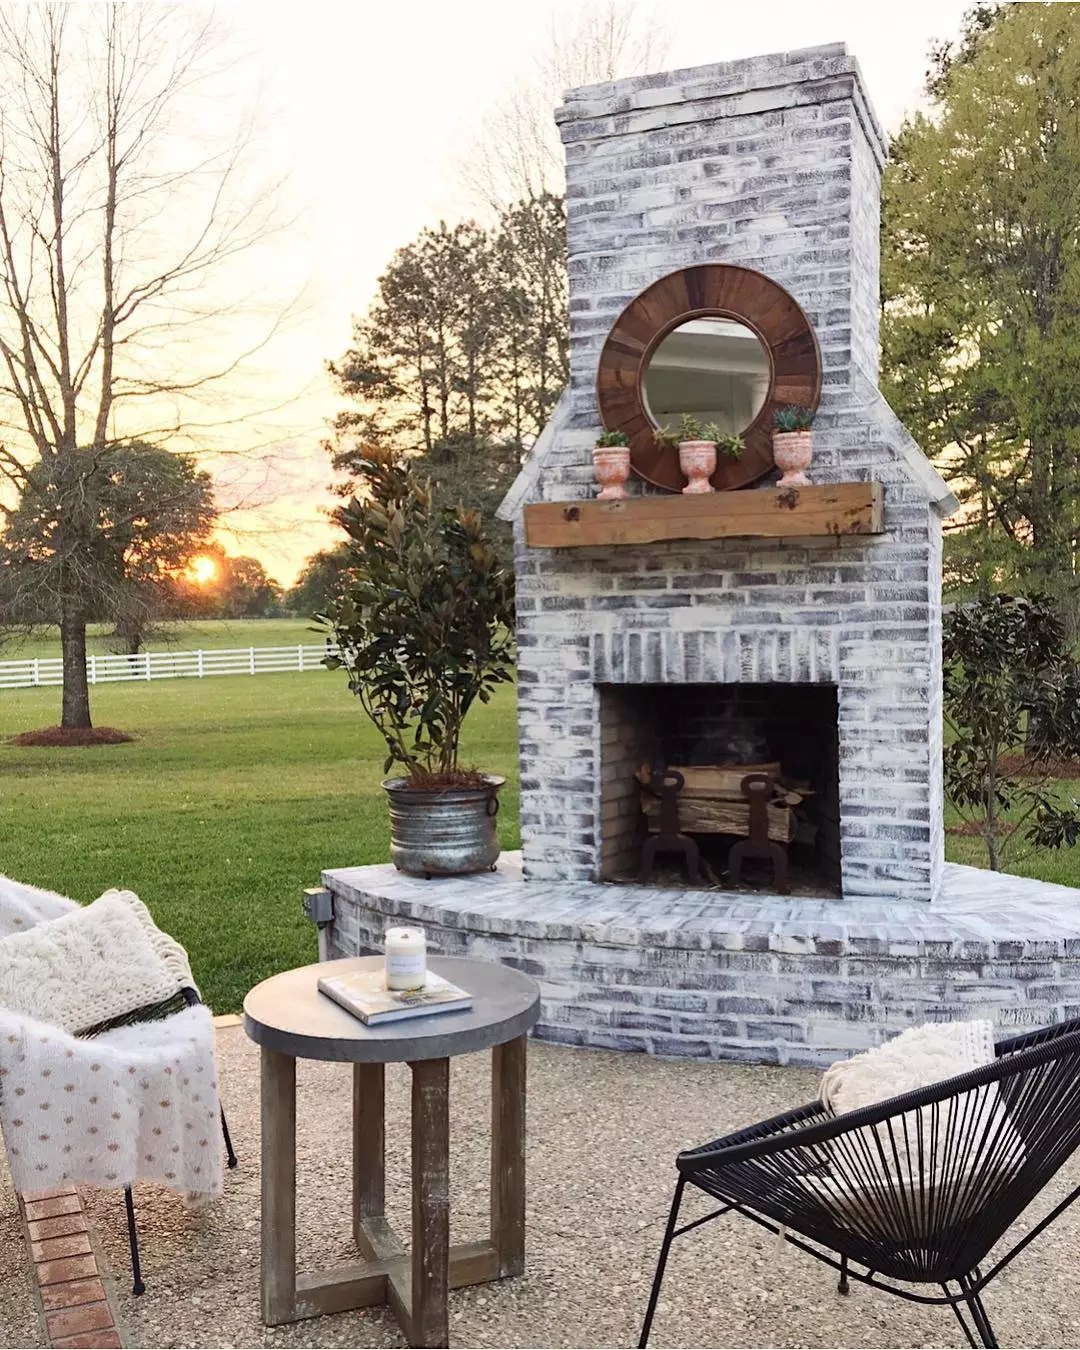 outdoor fireplace installed in the backyard with seating in front photo by Instagram user @cindimc.ivoryhomedesign